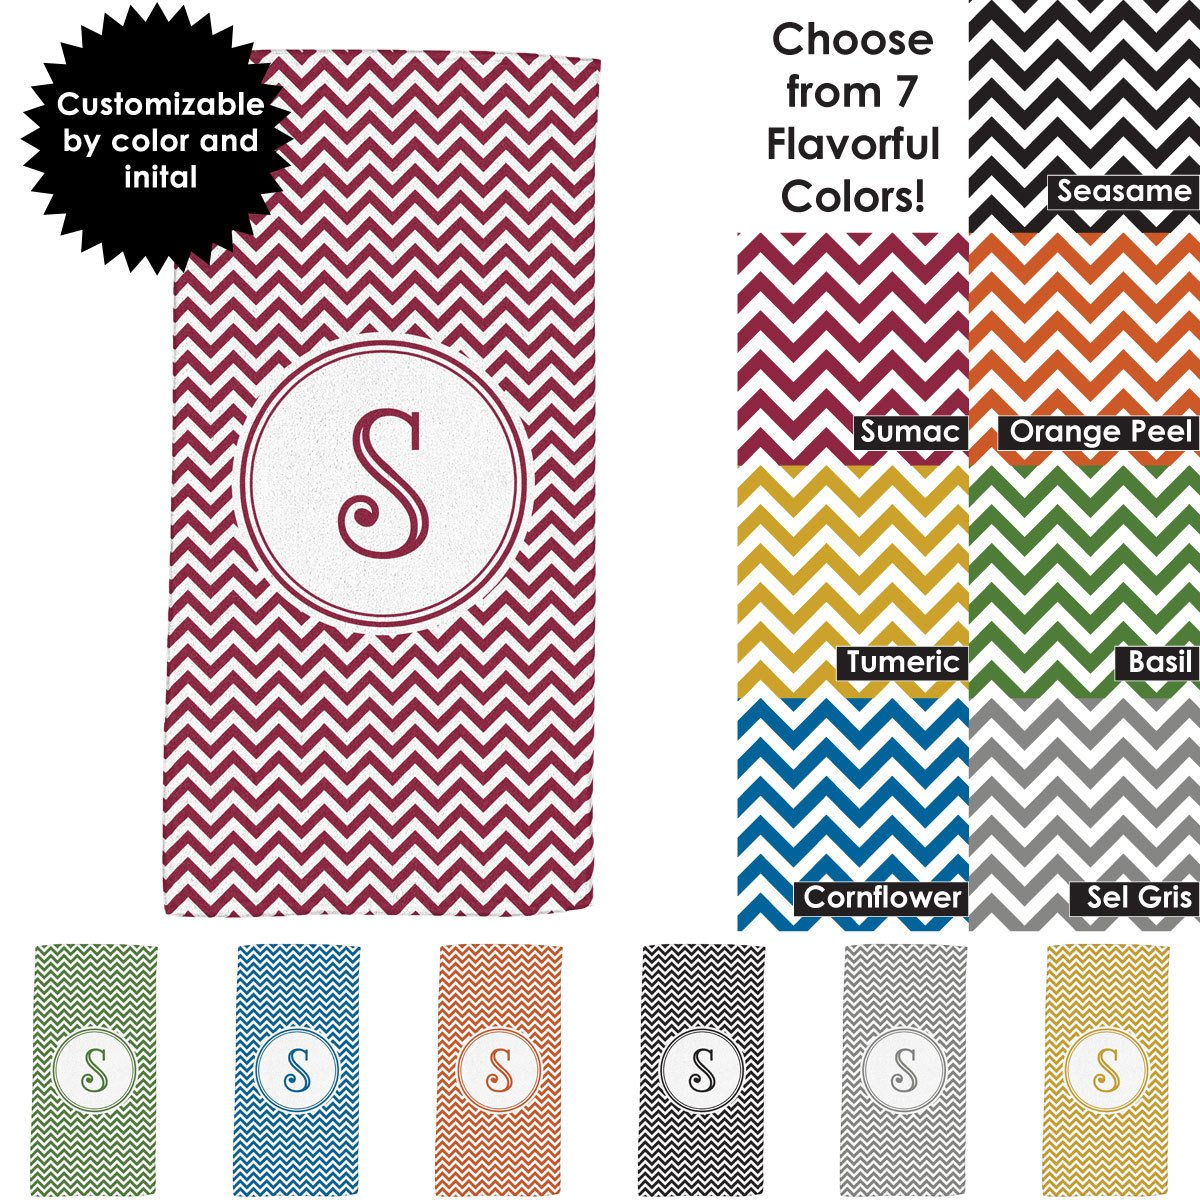 Chevron Design 30x60 Beach Towel with Customizable Monogram